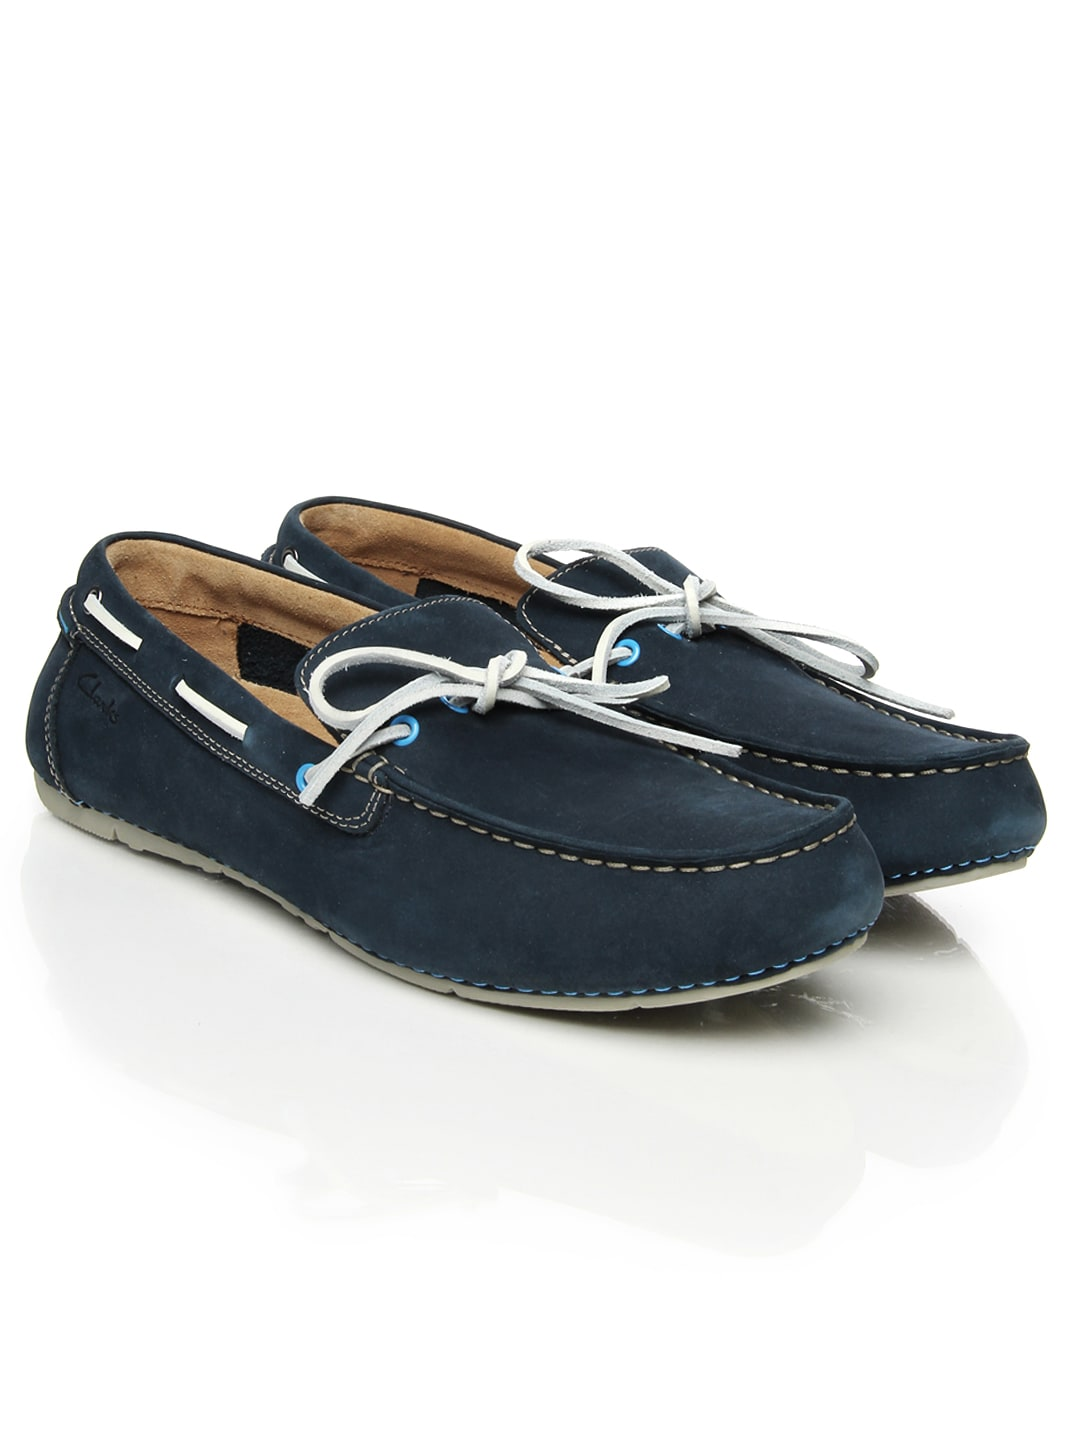 clarks mens boat shoes